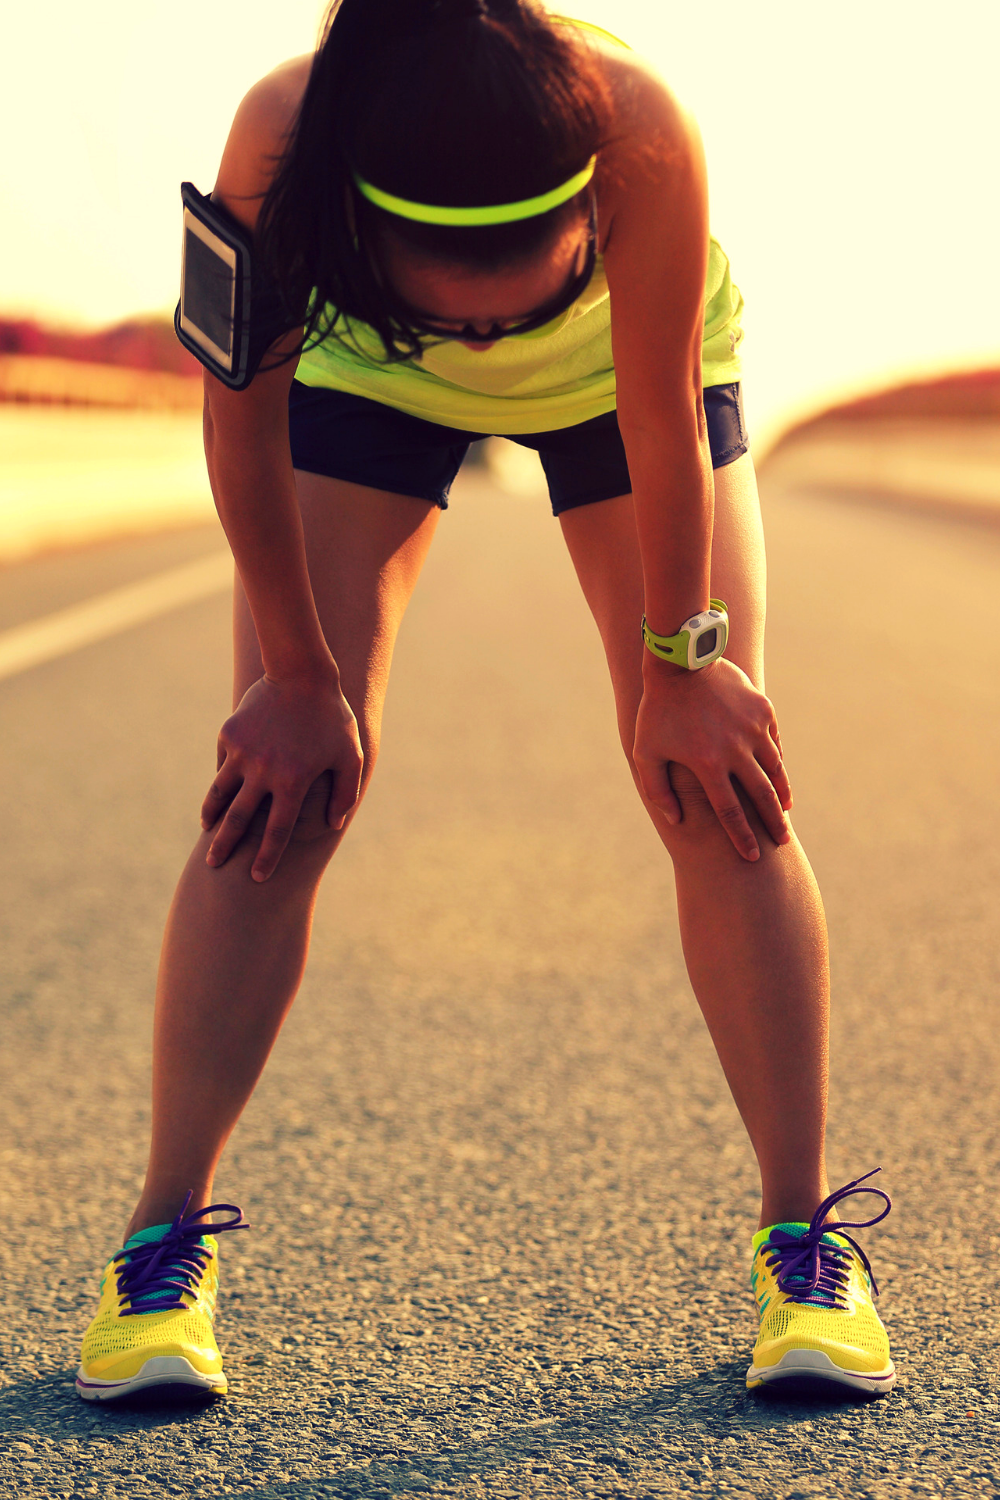 You've been hitting the gym hard, but do you know how important it is to practice recovery and mindf...